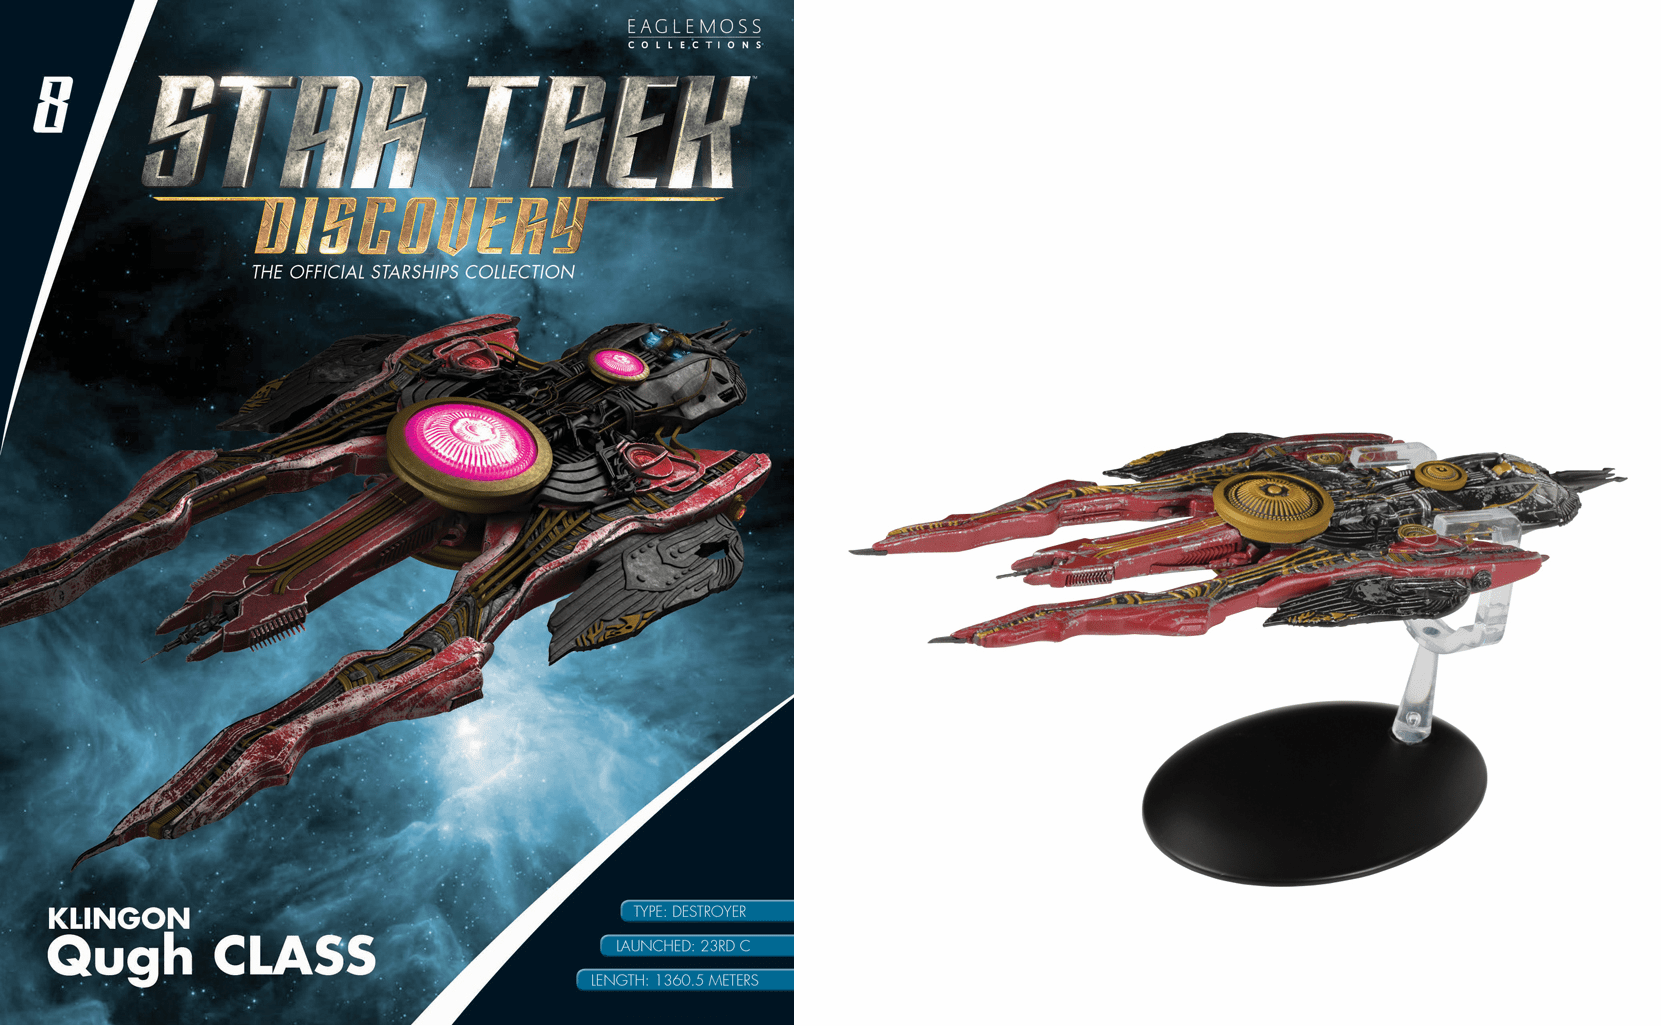 Star Trek Discovery Ship Collection Magazine Klingon Qugh Class